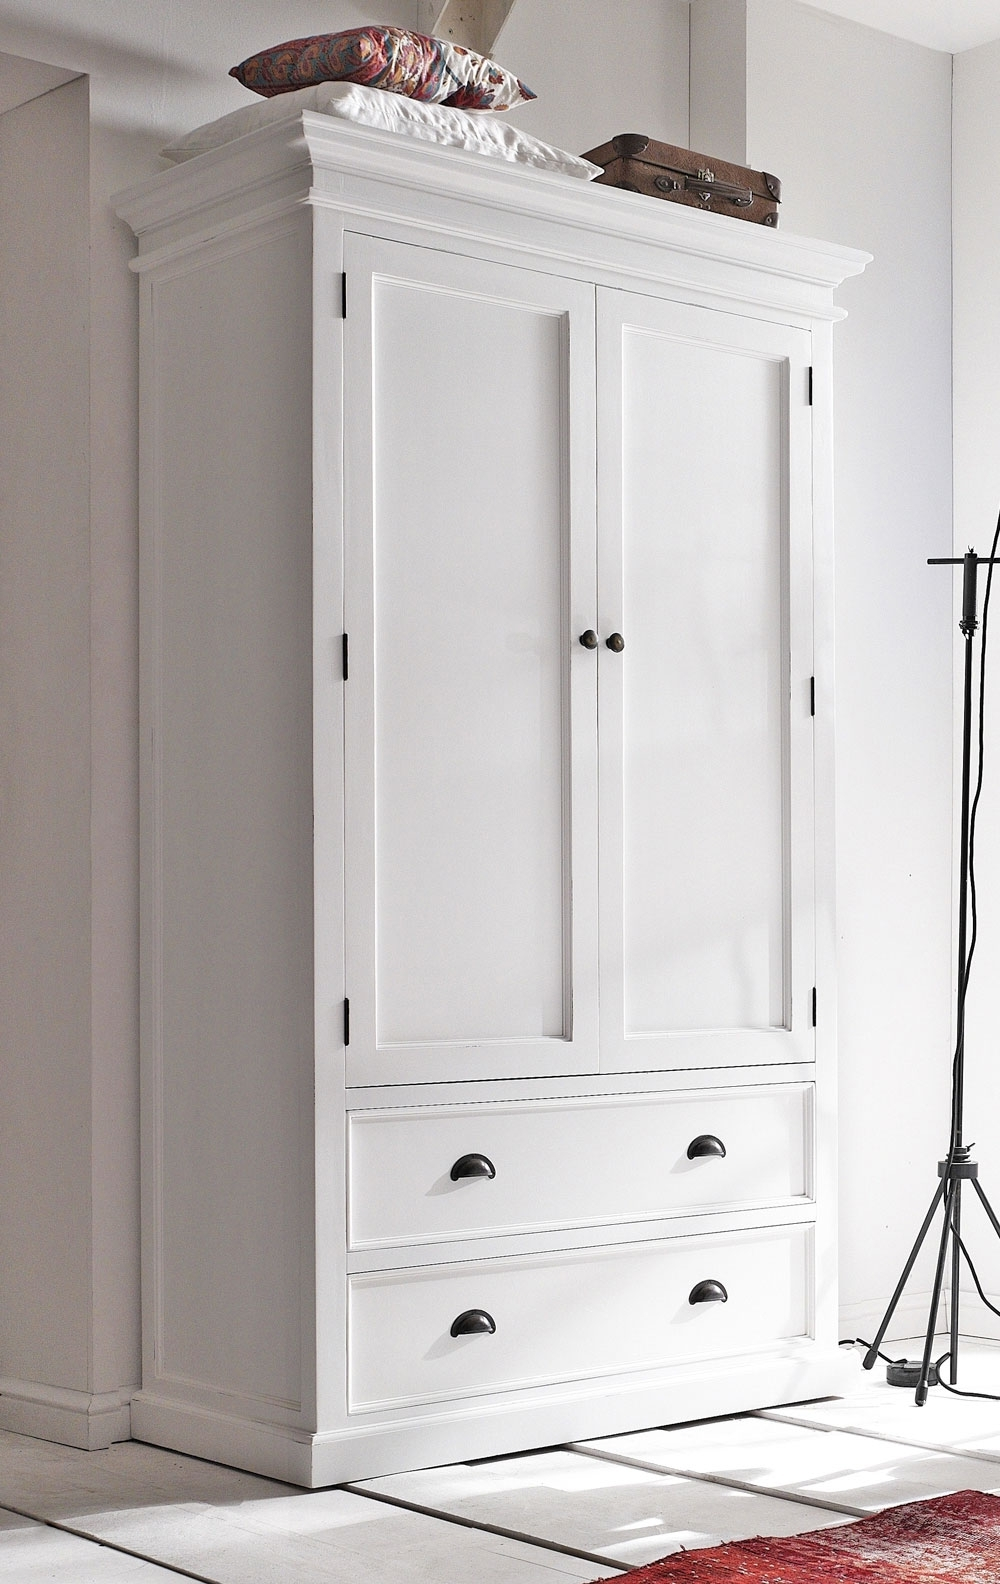 2017 Antique White Wardrobes With 13 Vintage Closet Sets For Your Secret Fashionable Sanctuary (View 15 of 15)